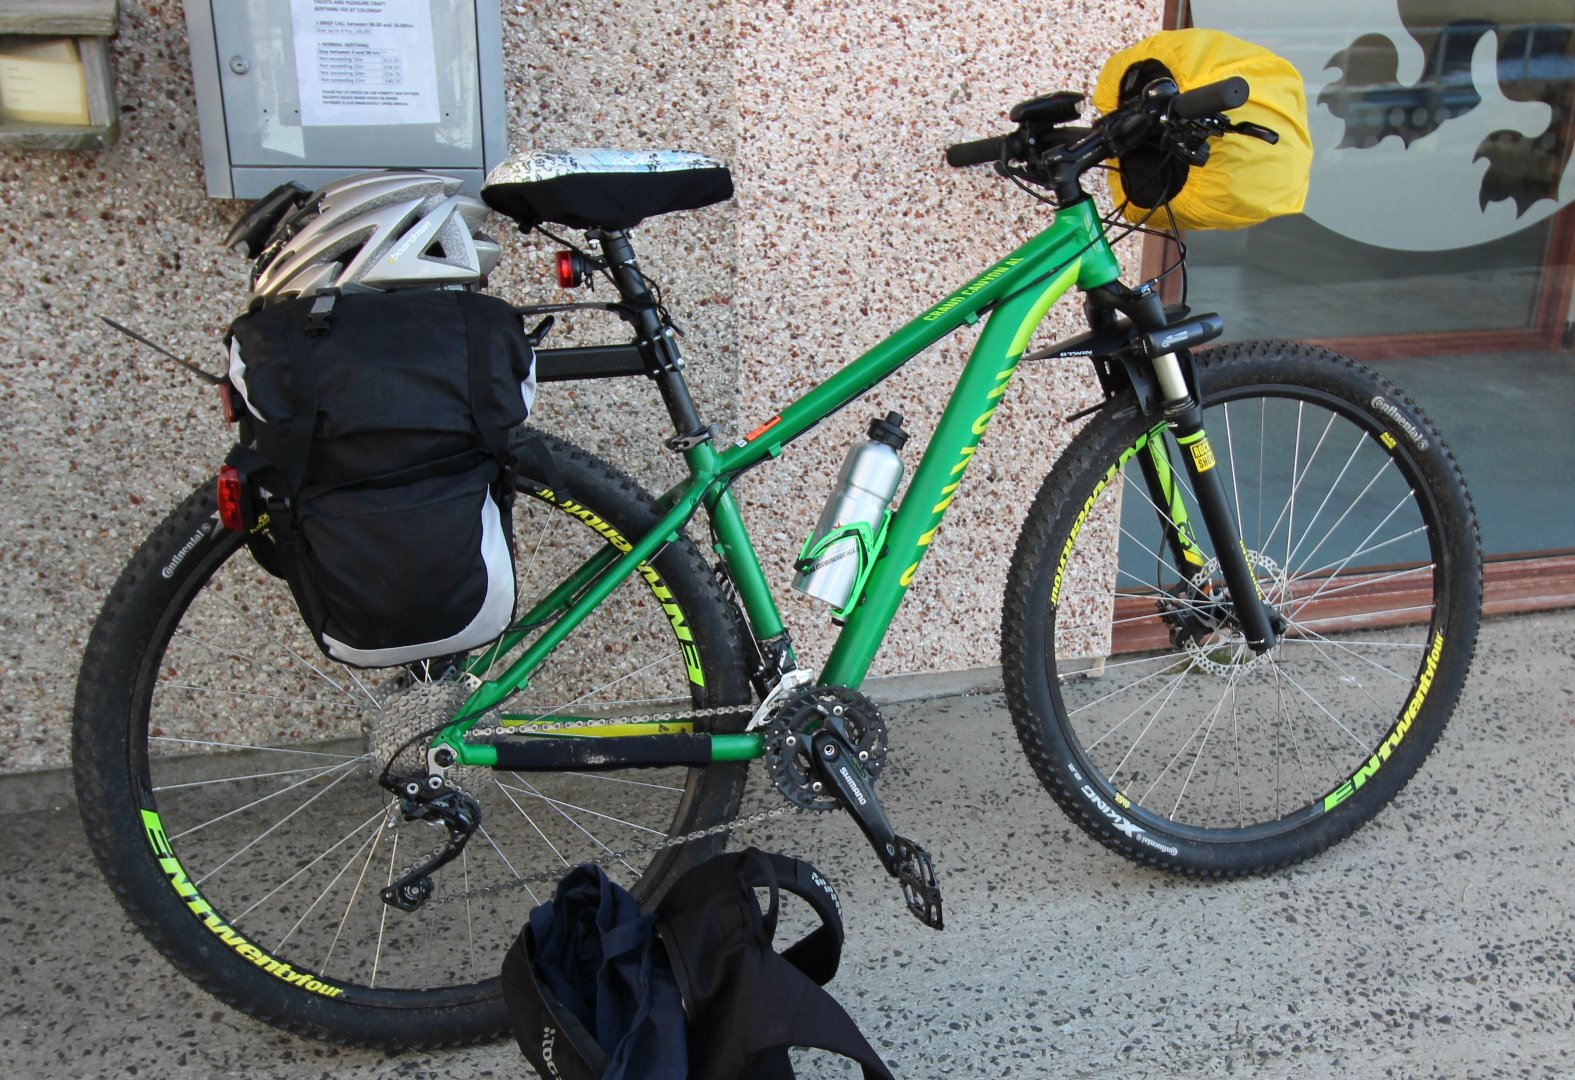 Stolen Canyon bicycles Grand Canyon AL 5.9 W 29″ 2015 - CCTV IMAGES ...